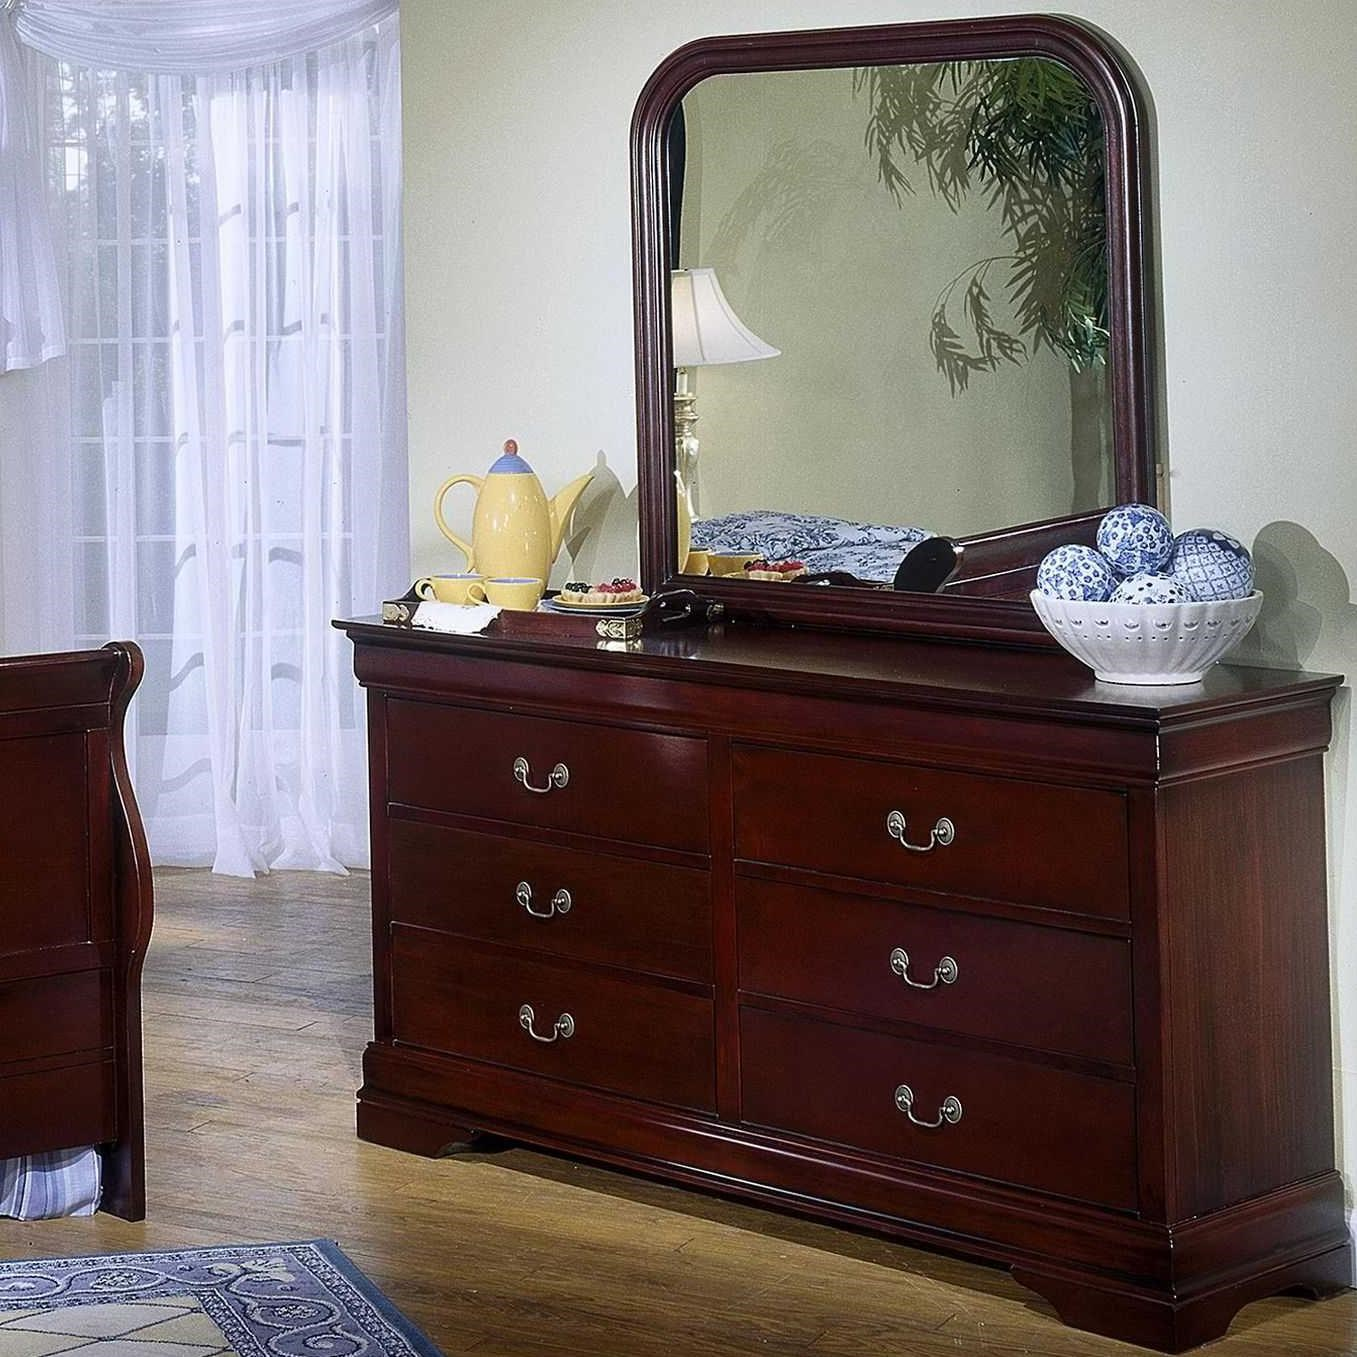 dresser with hutch mirror side shelf lifestyle 5933 drawer dresser rounded square mirror combo